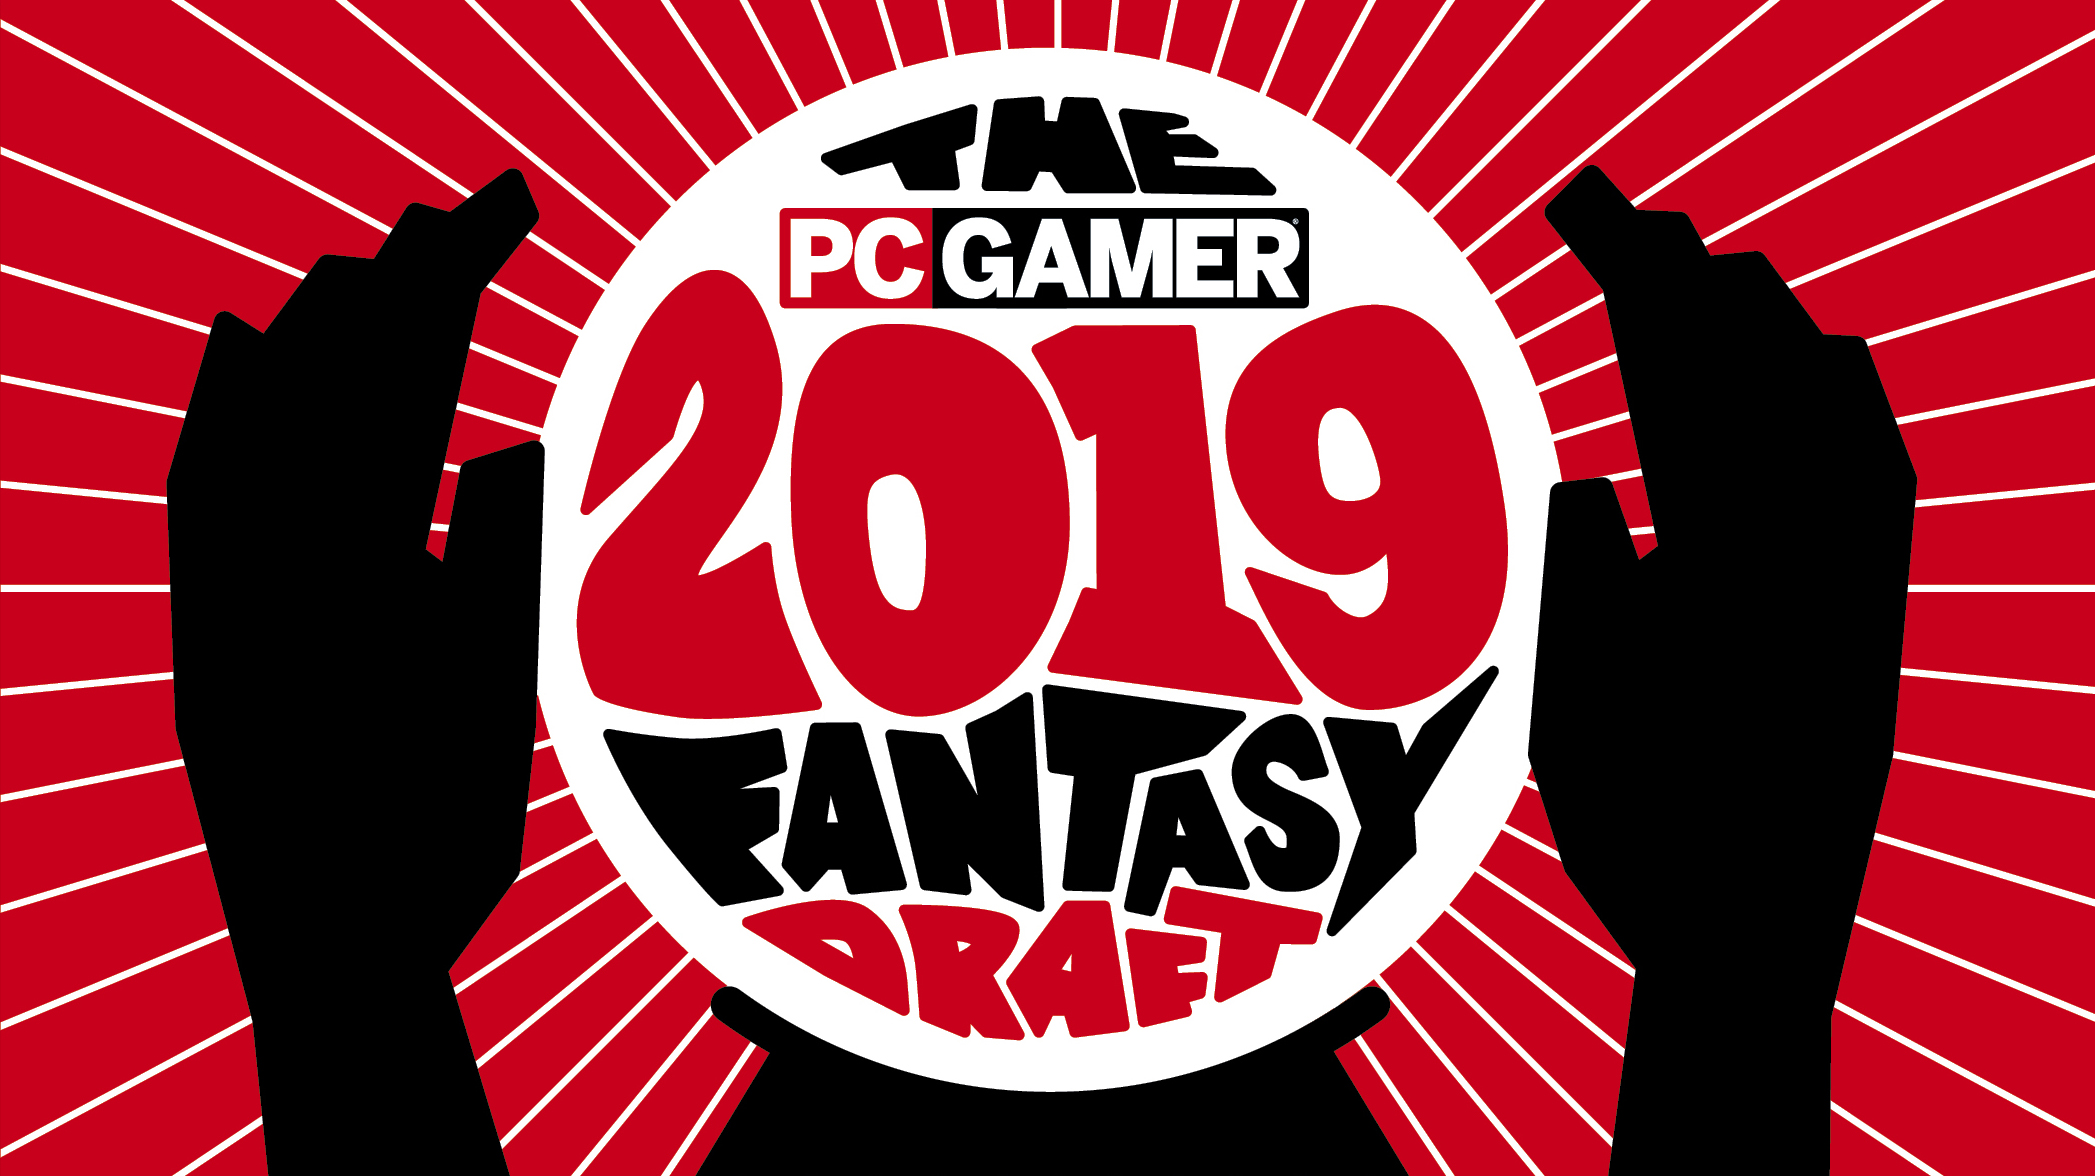 Image result for The PC Gamer 2019 Fantasy Draft